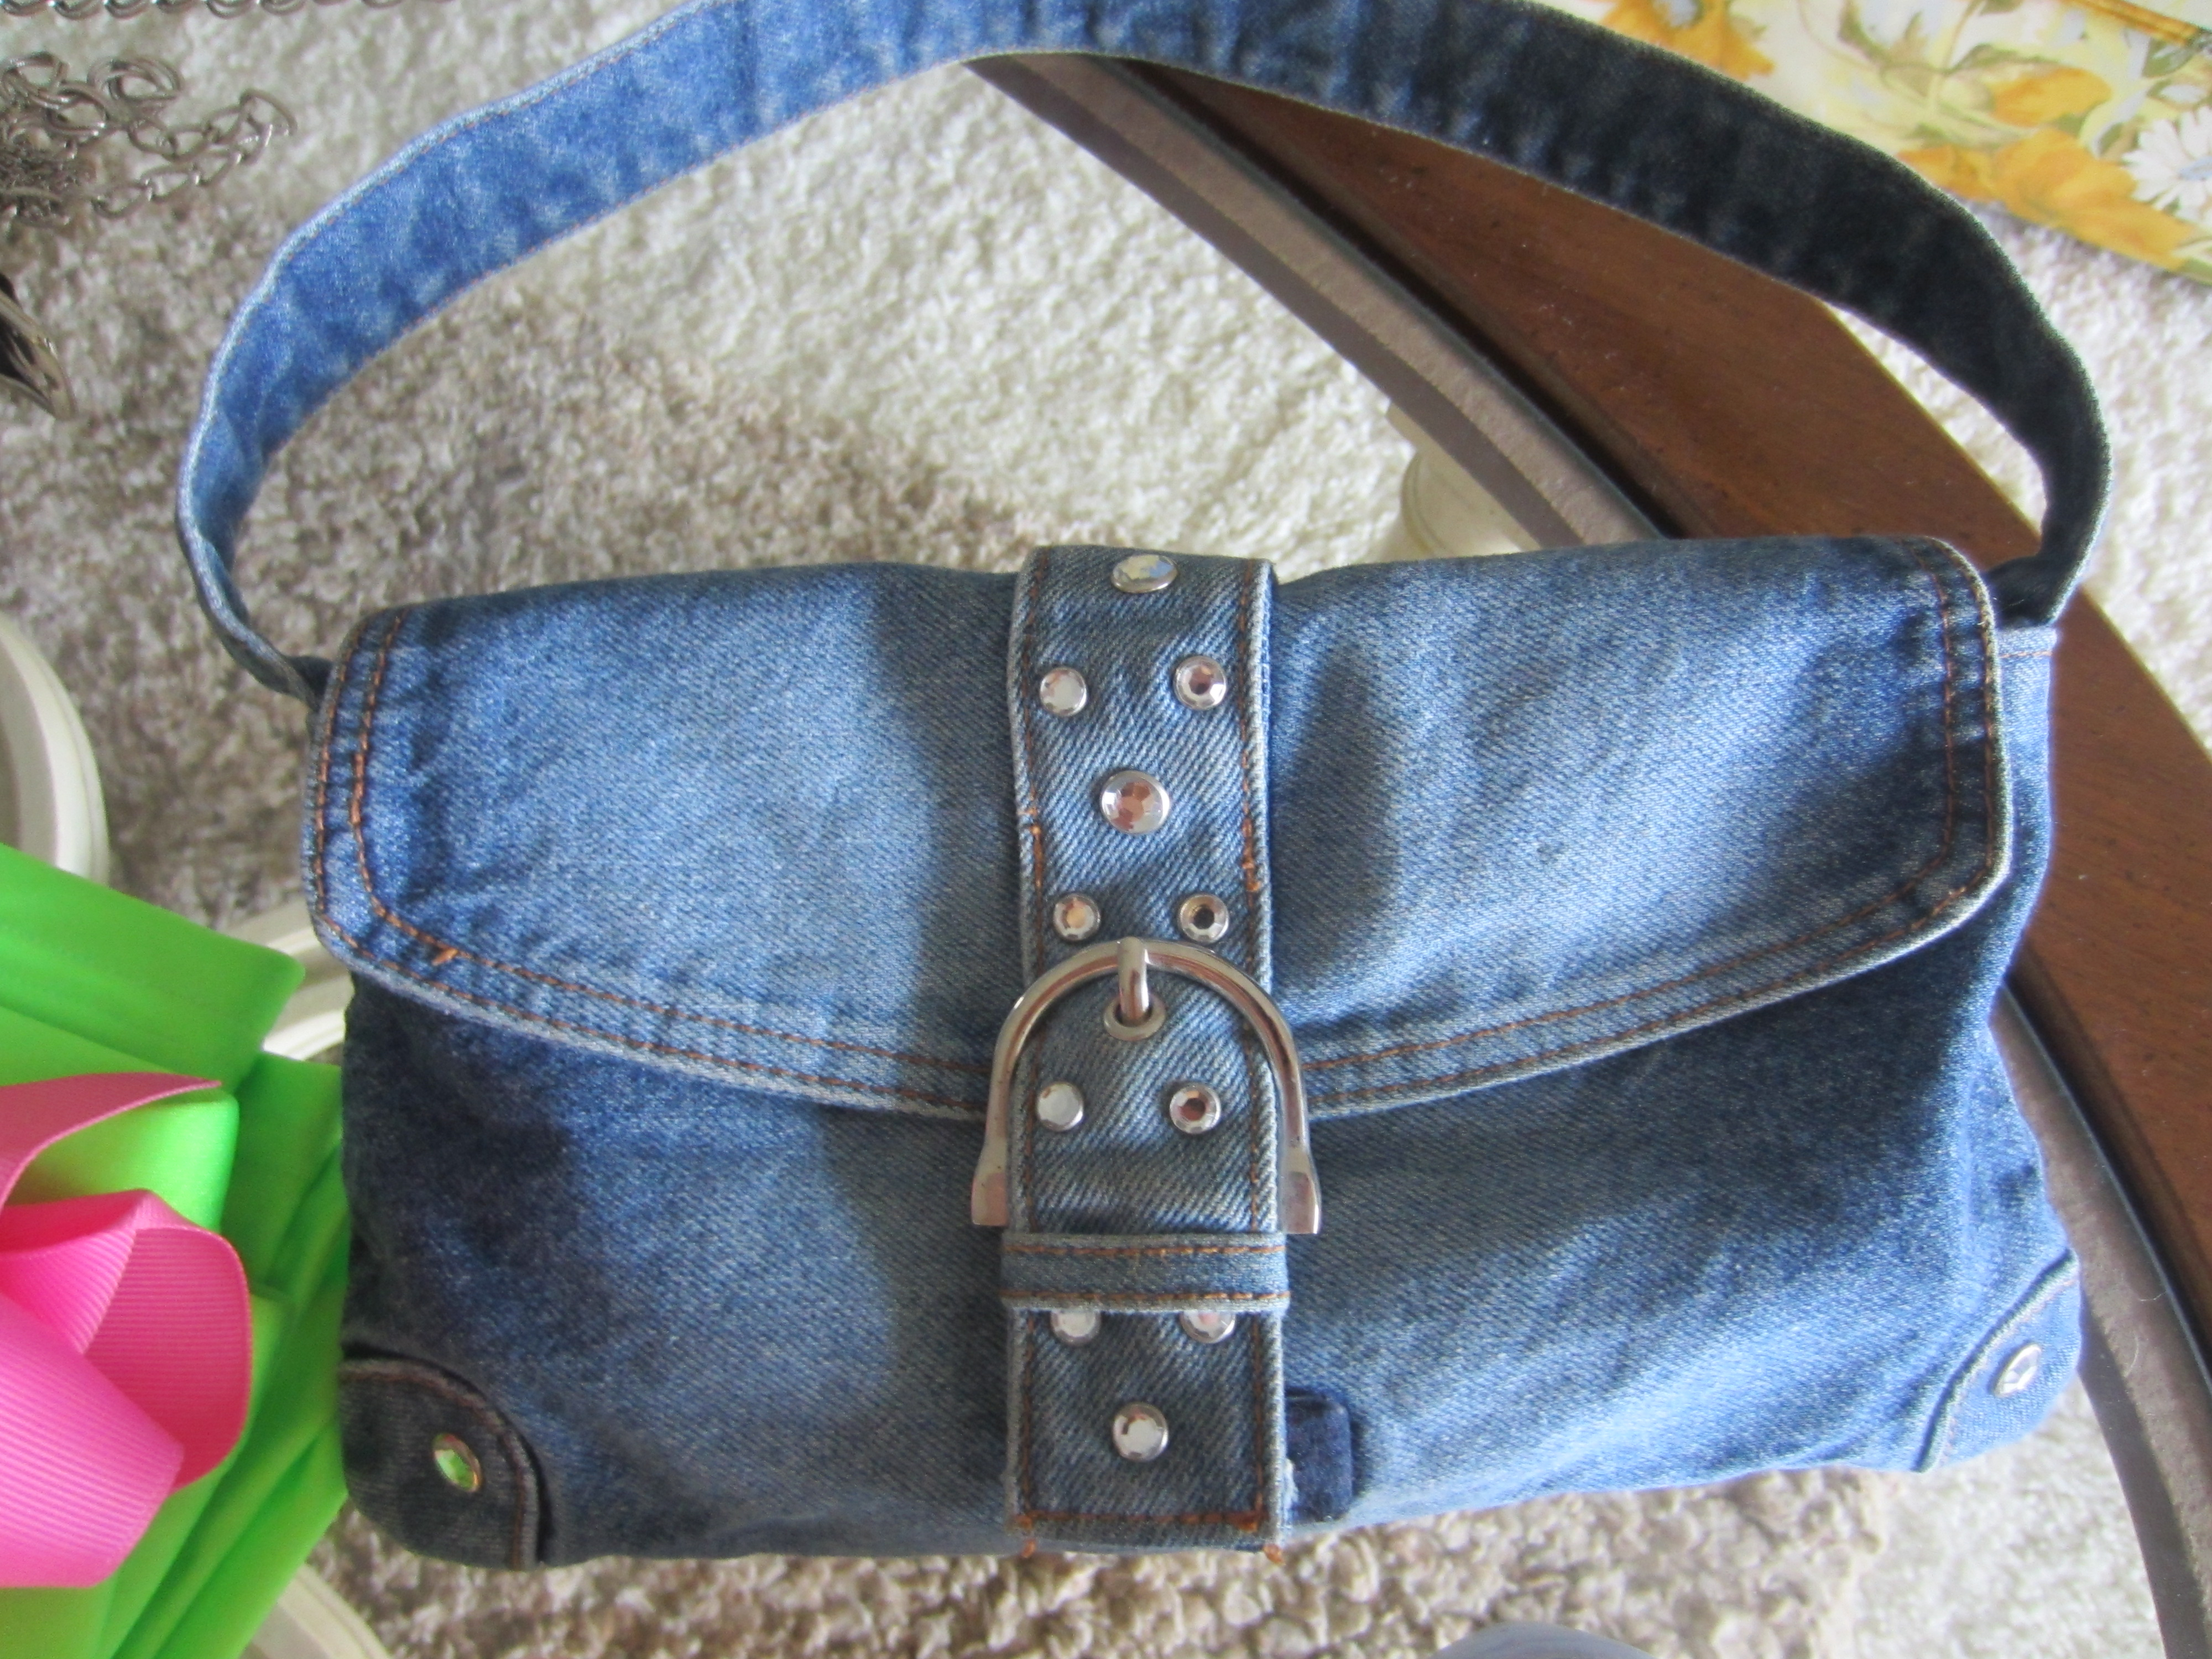 80s Denim purse from thrift store